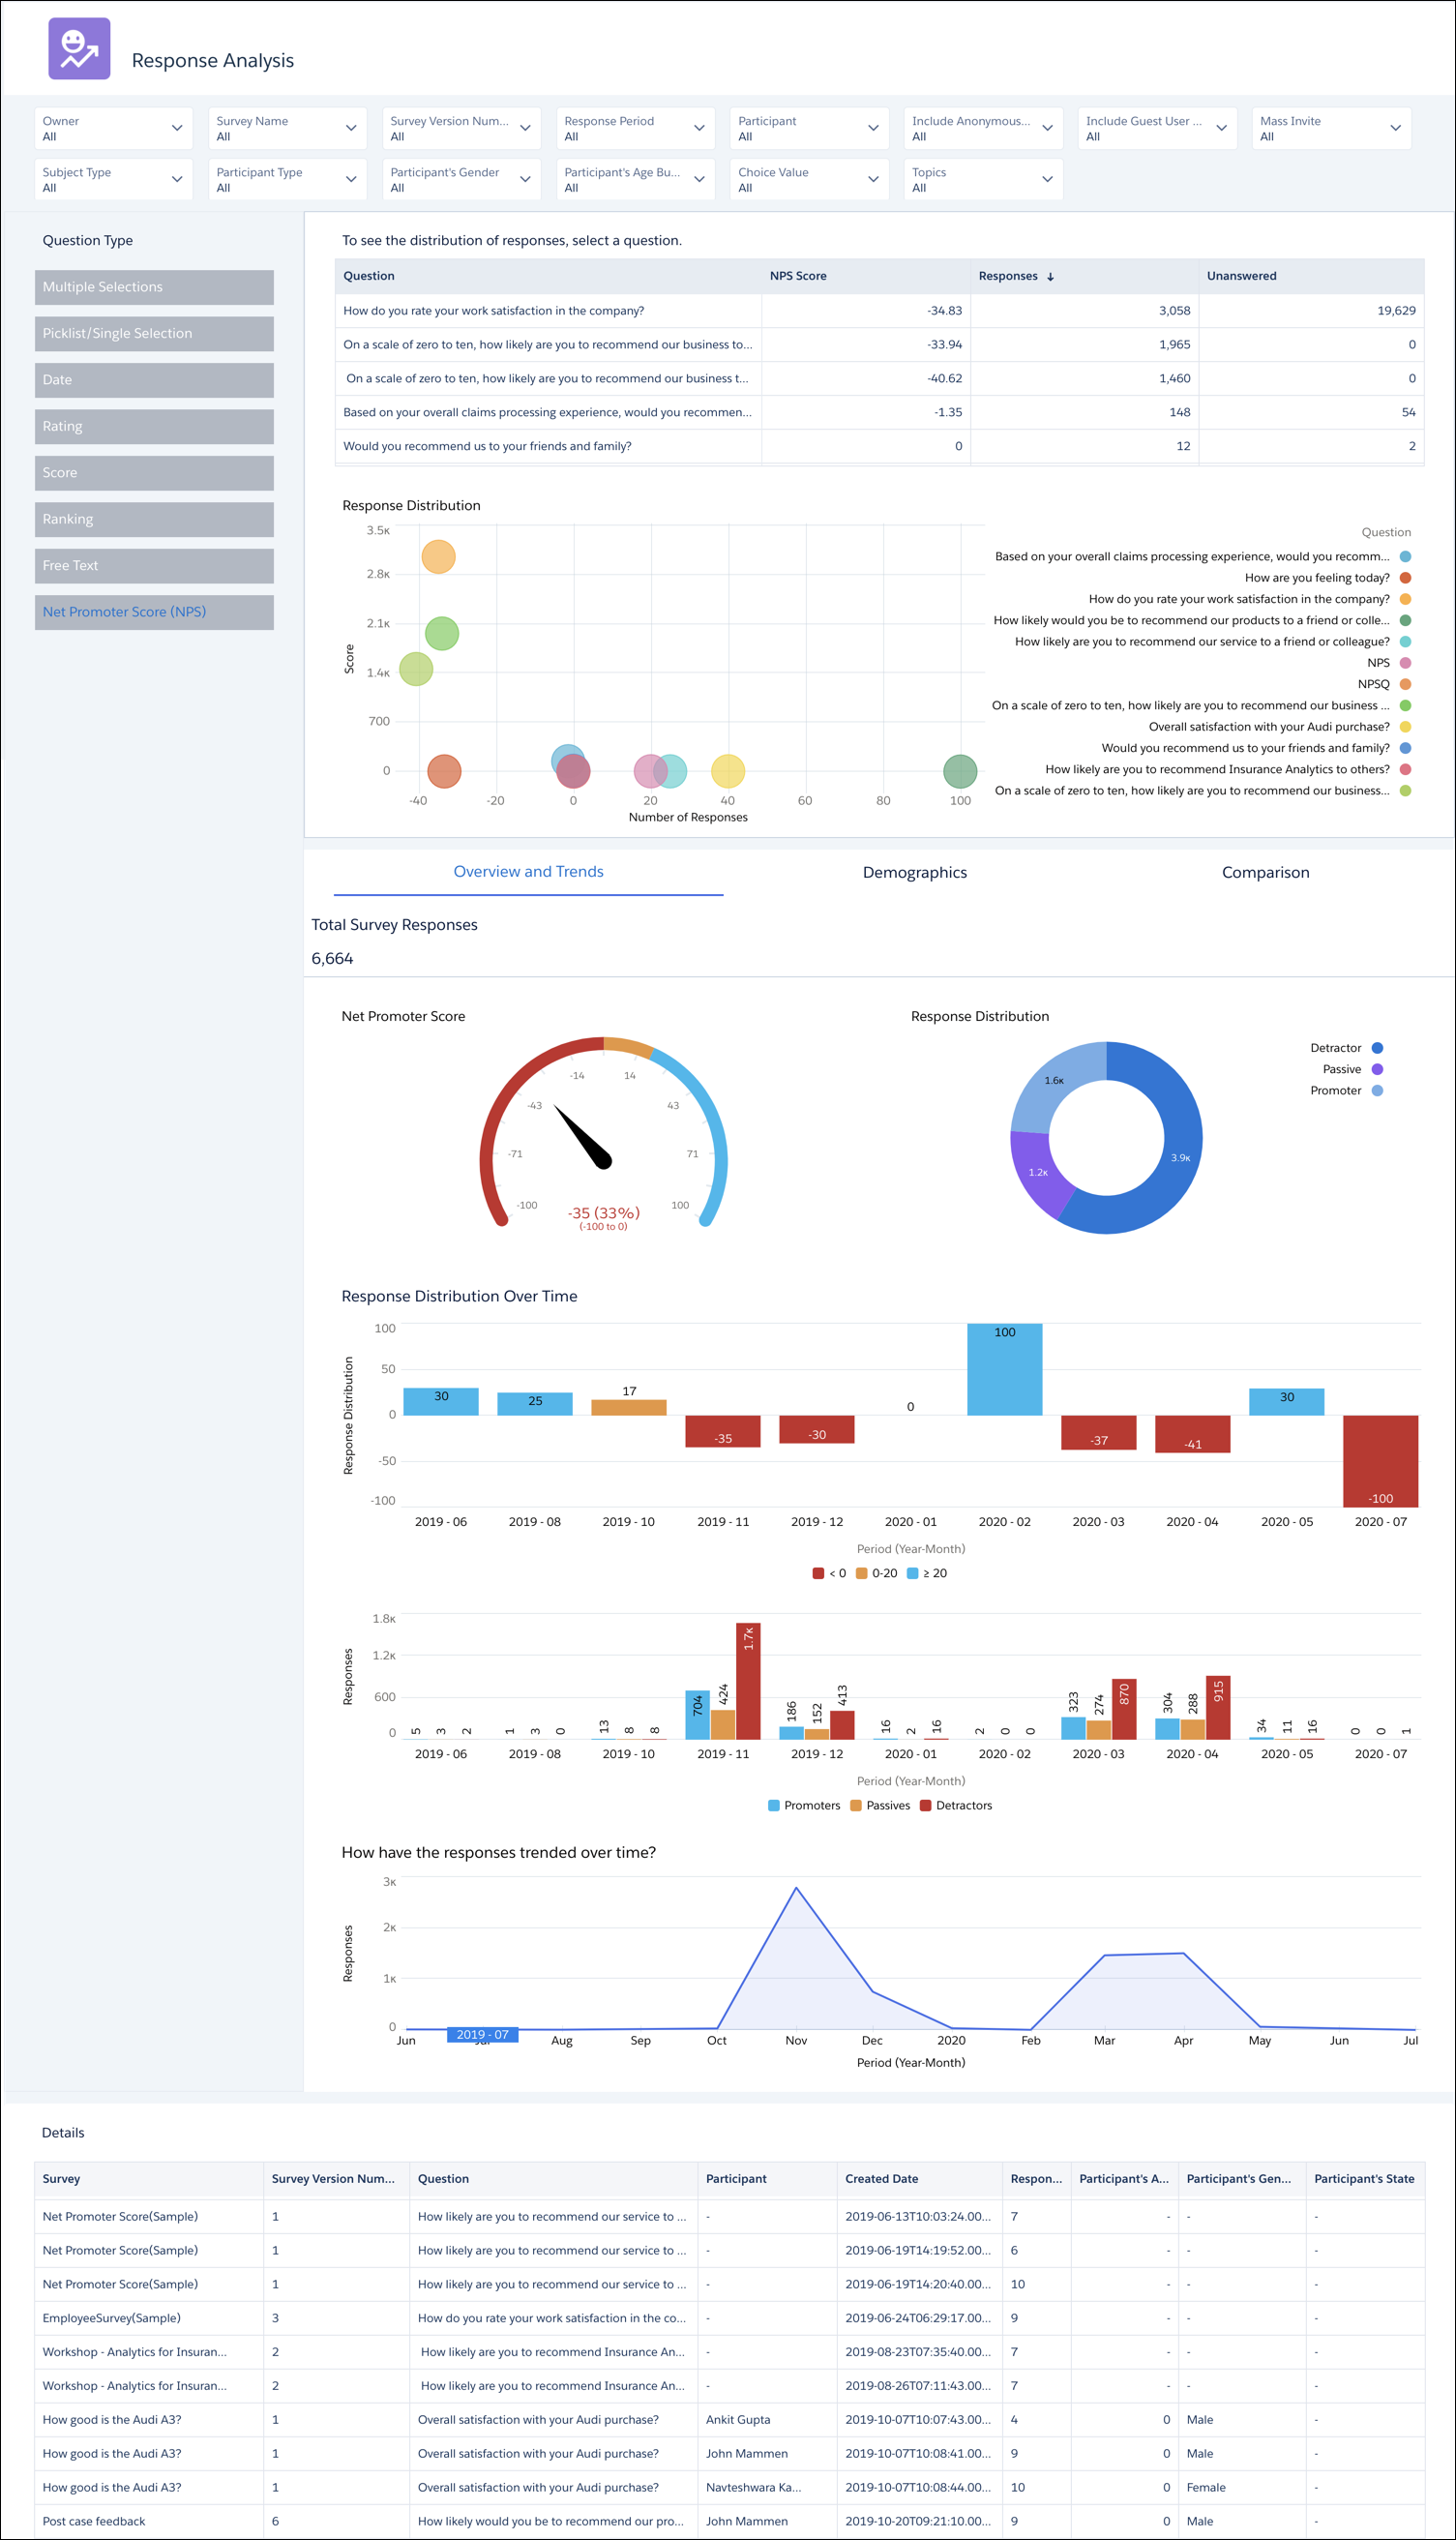 Example response analysis dashboard, which includes analysis of the Net Promoter Score of the company.